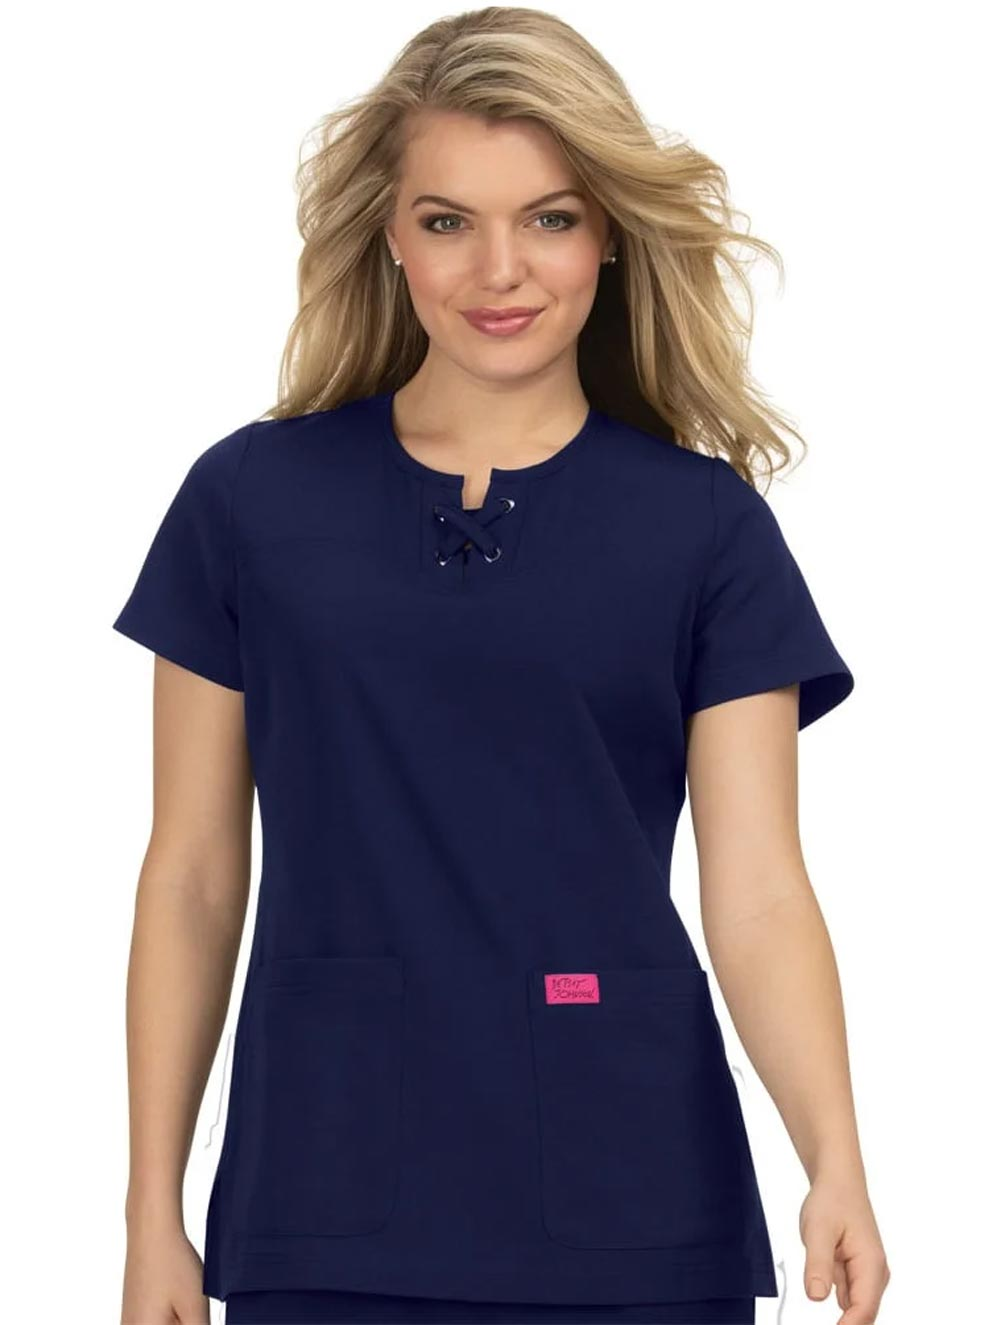 'Clover' Solid Scrub Top